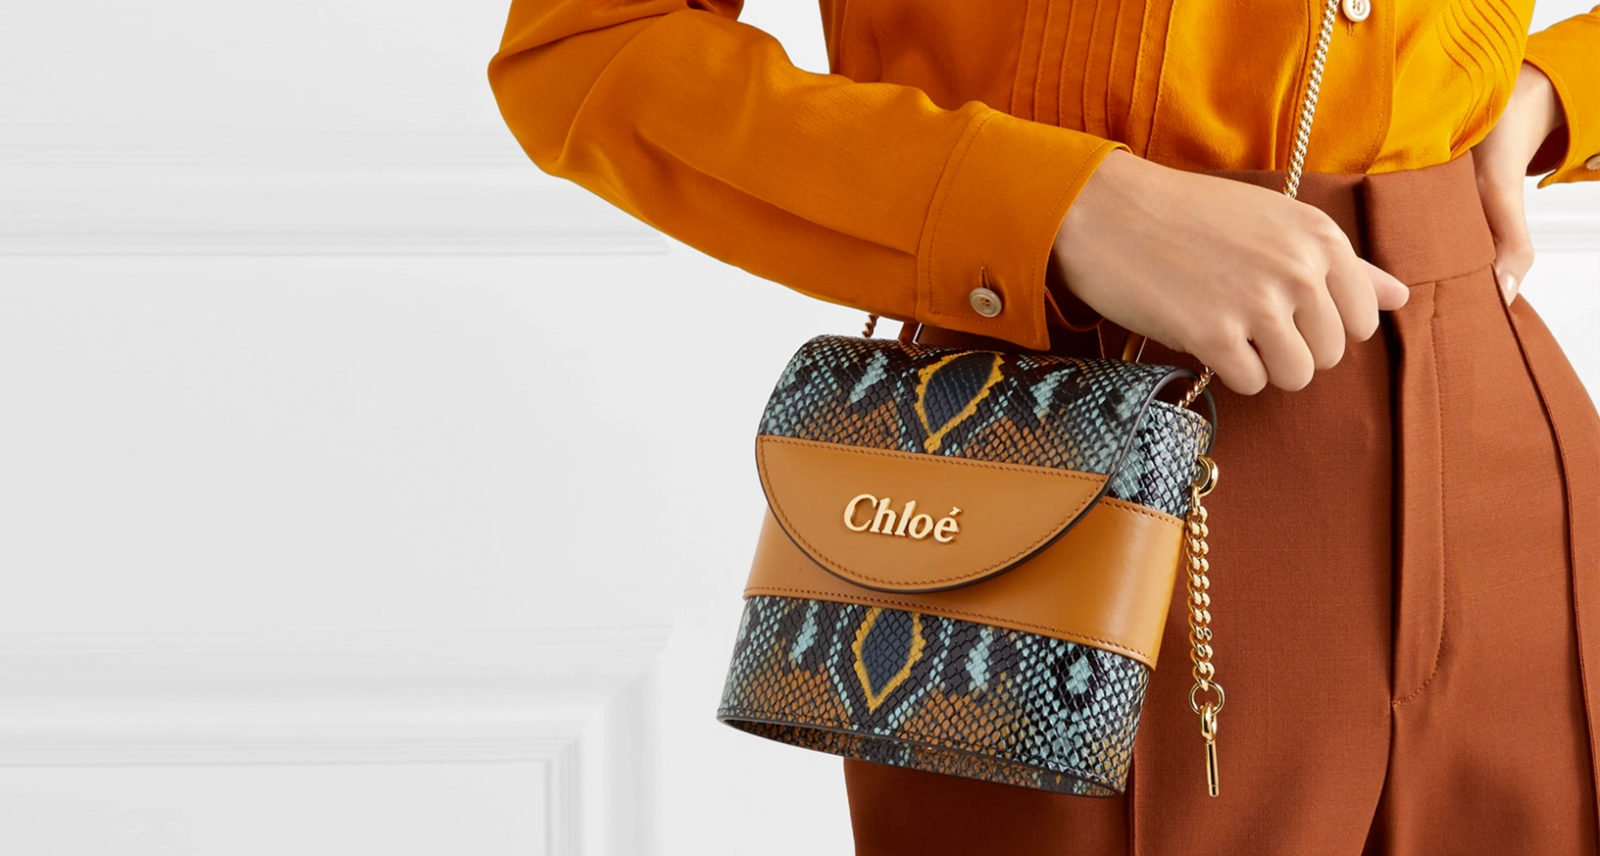 Shop these pieces from the Net-A-Porter summer sale before they're gone